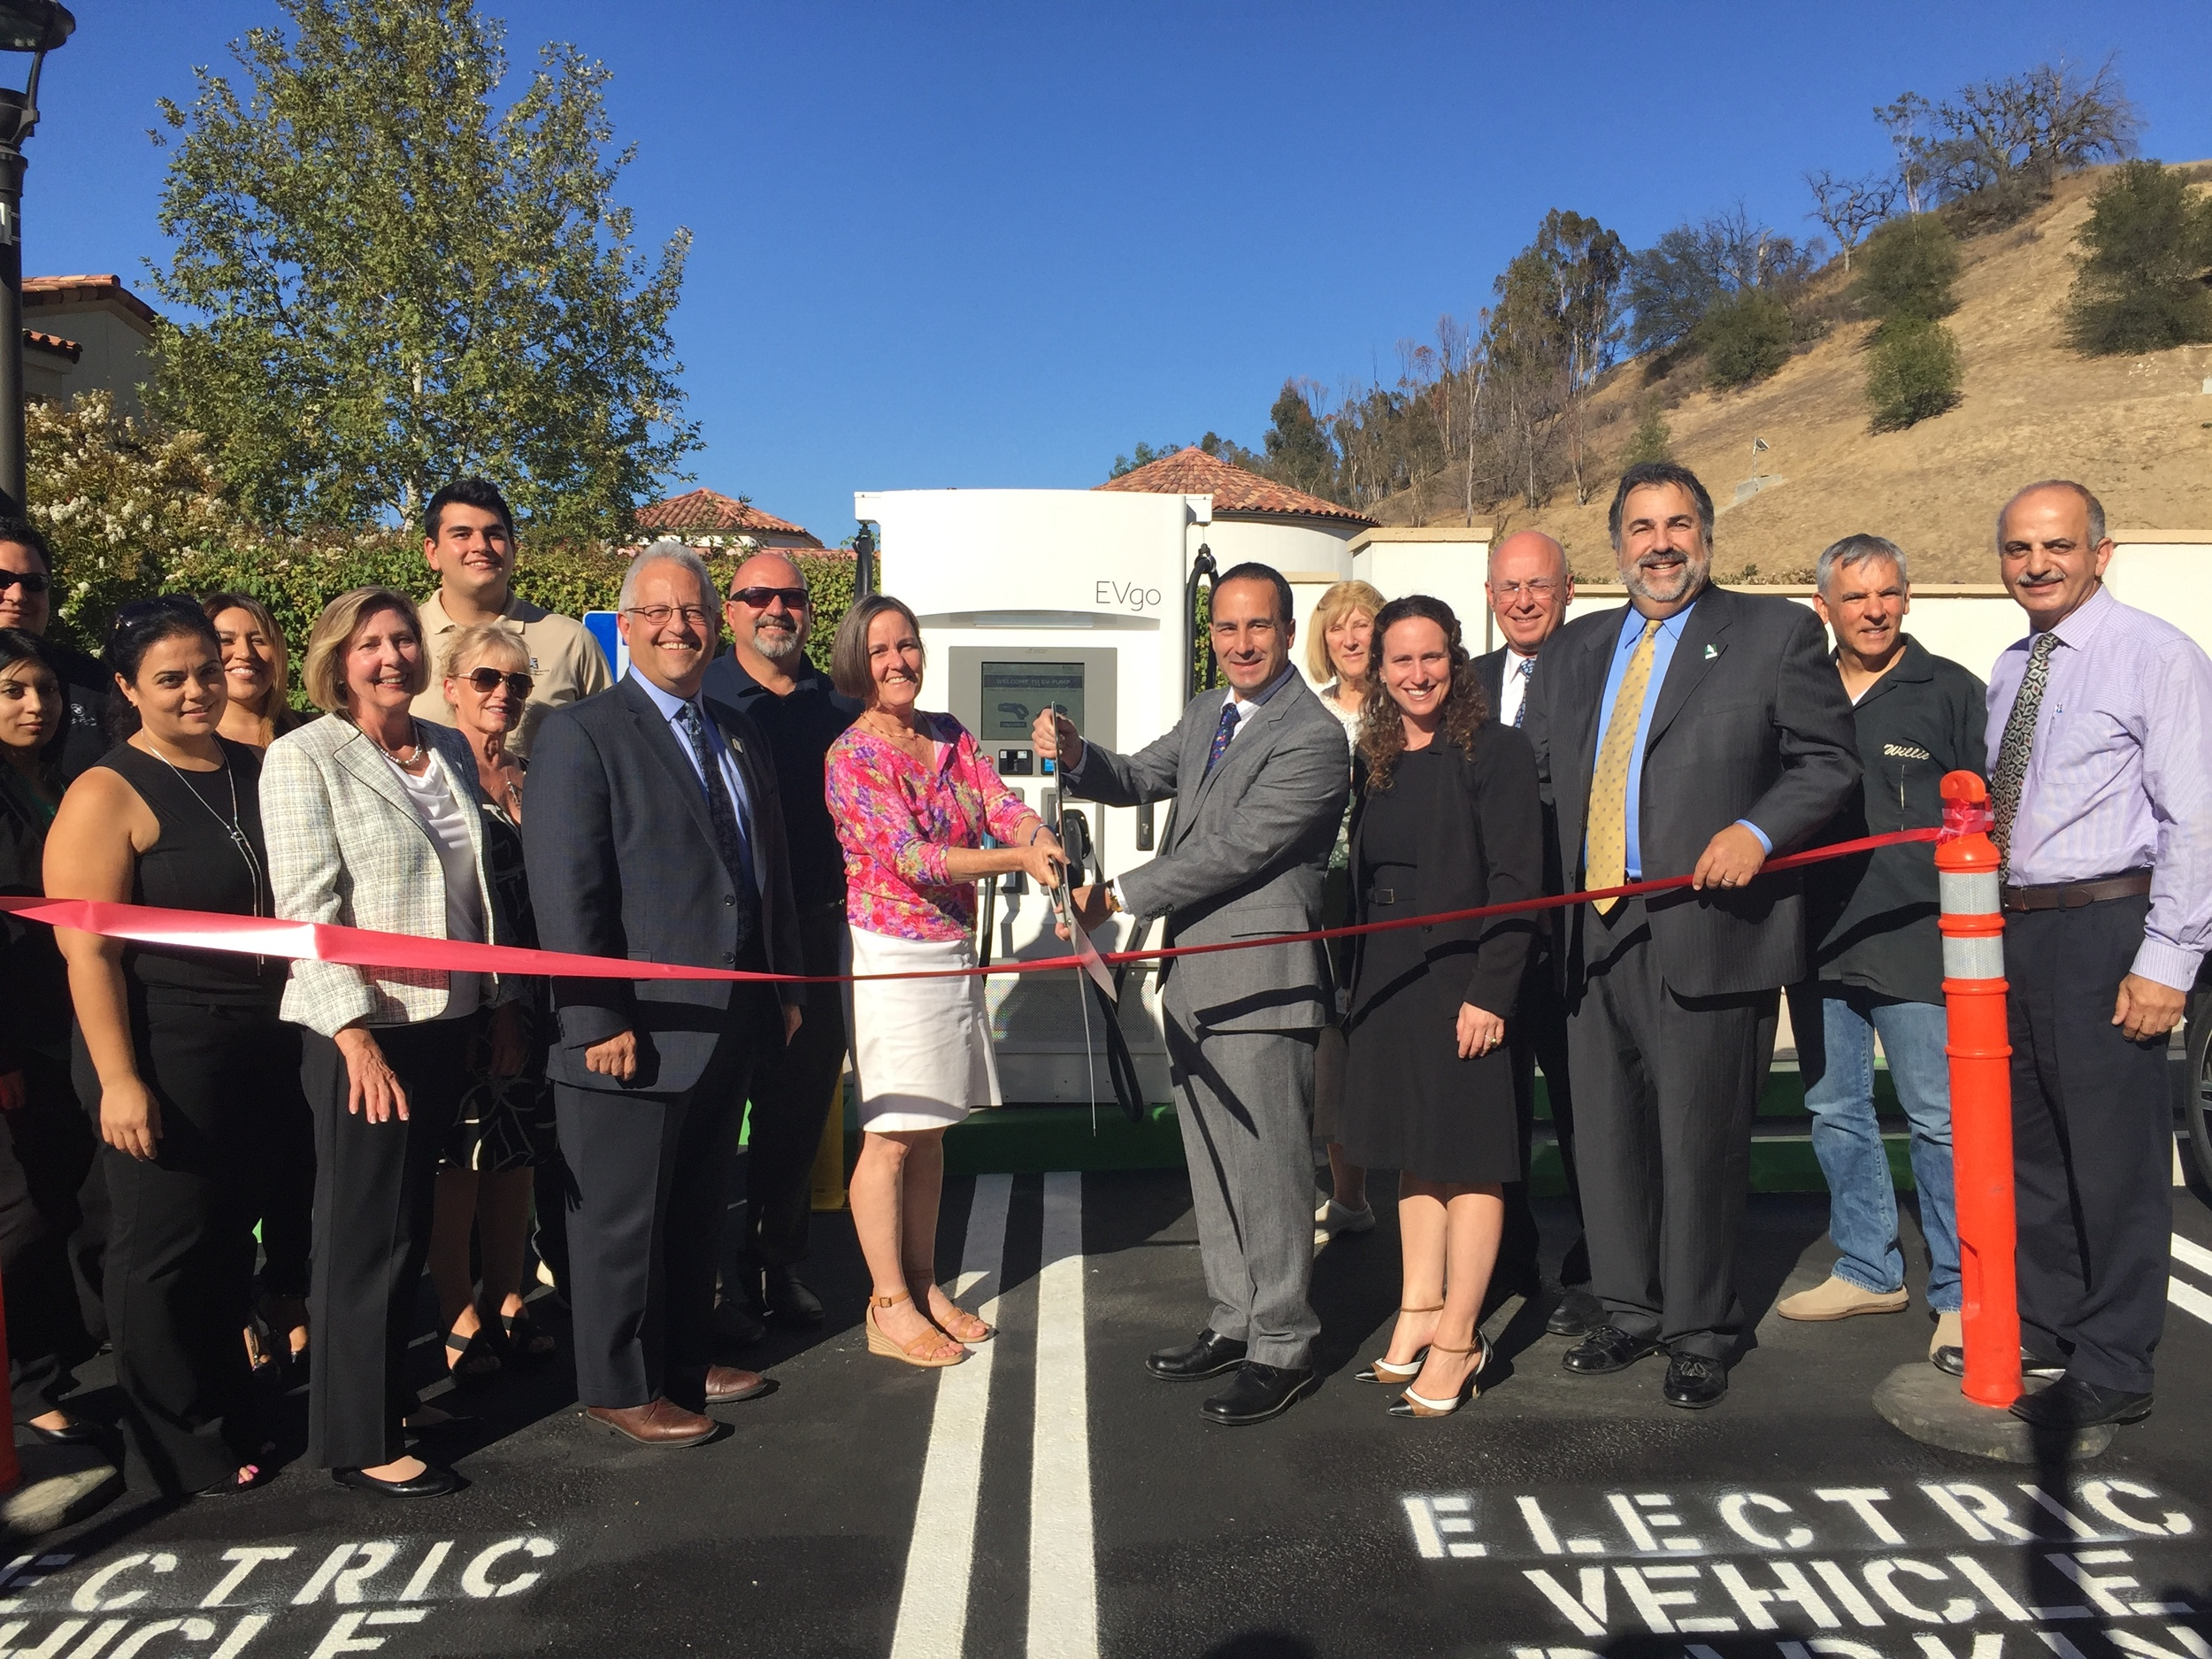 Calabasas Mayor James Bozajian cuts the ribbon at the first DCFC charging station opening on August 10, 2016 along with partners from the South Coast AQMD, NRG evGO, and the City of Calabasas.